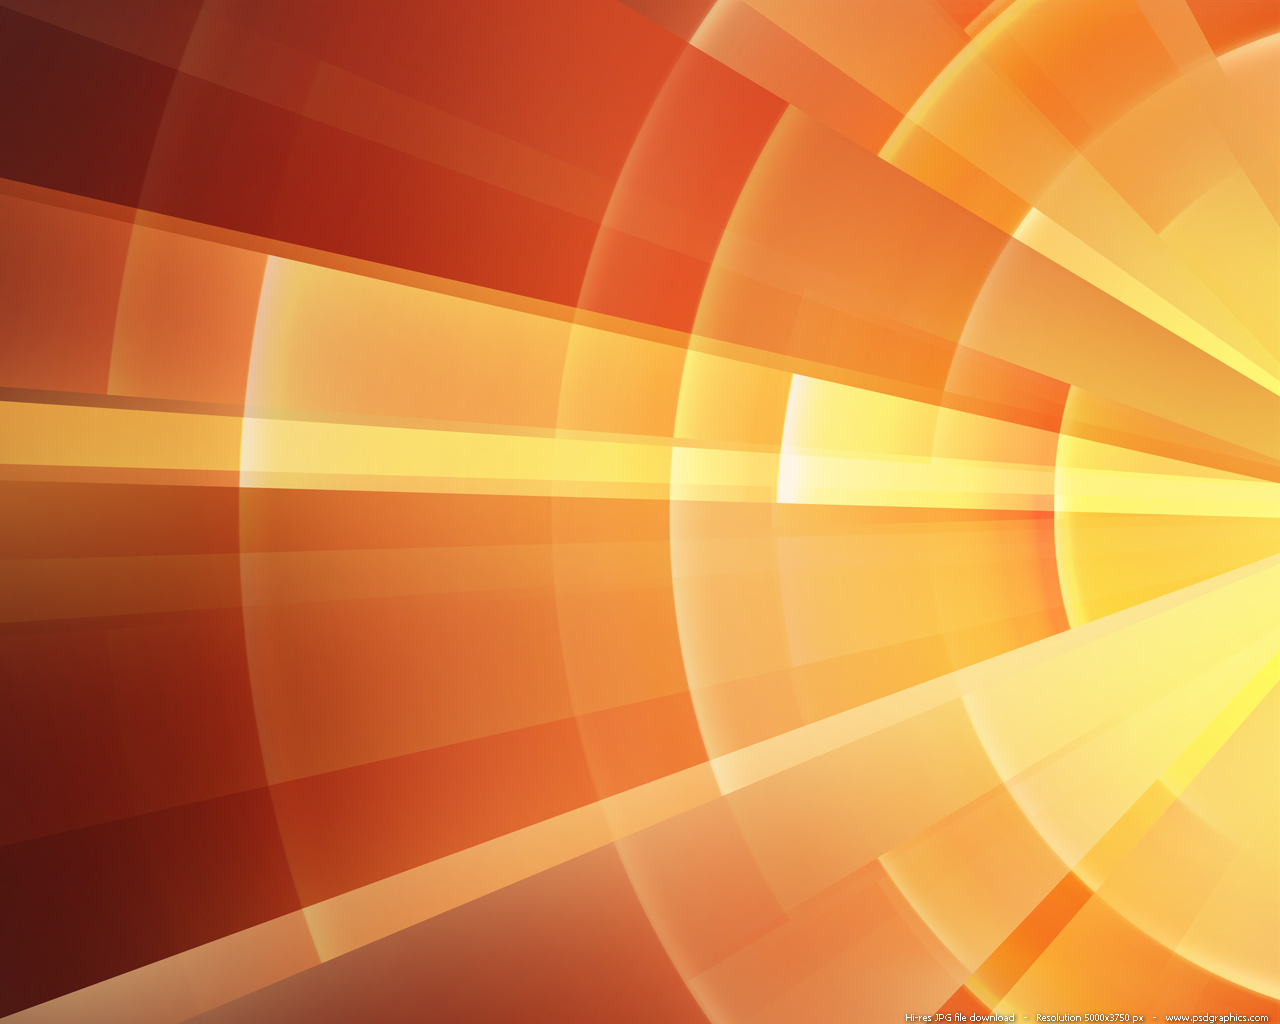 Medium size preview (1280x1024px): orange rings background